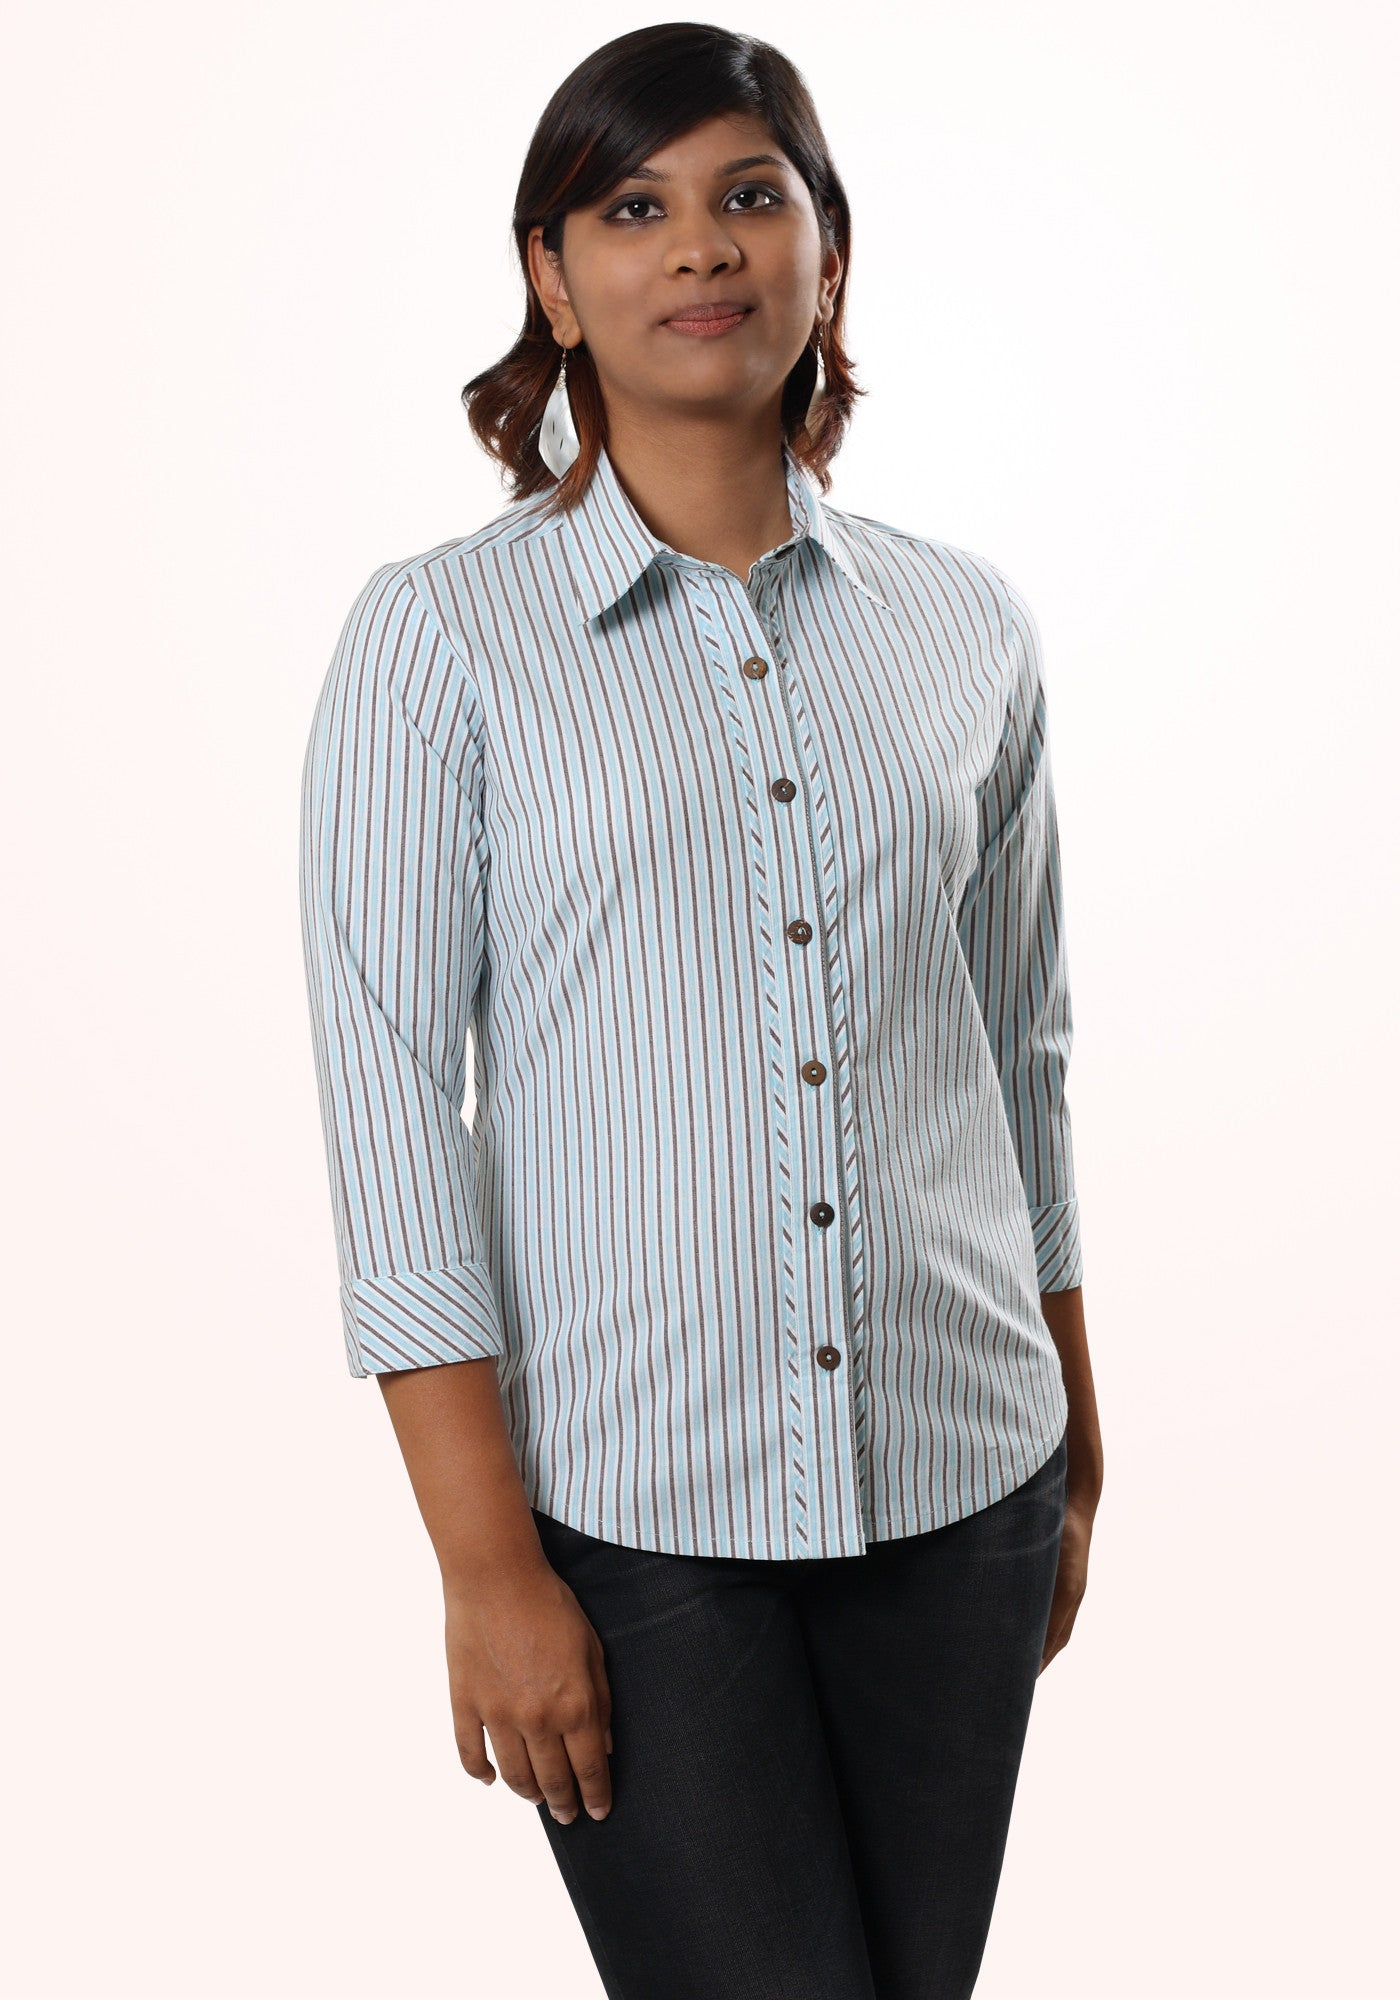 Bias Trim Striped cotton Shirt - MINC ecofashion